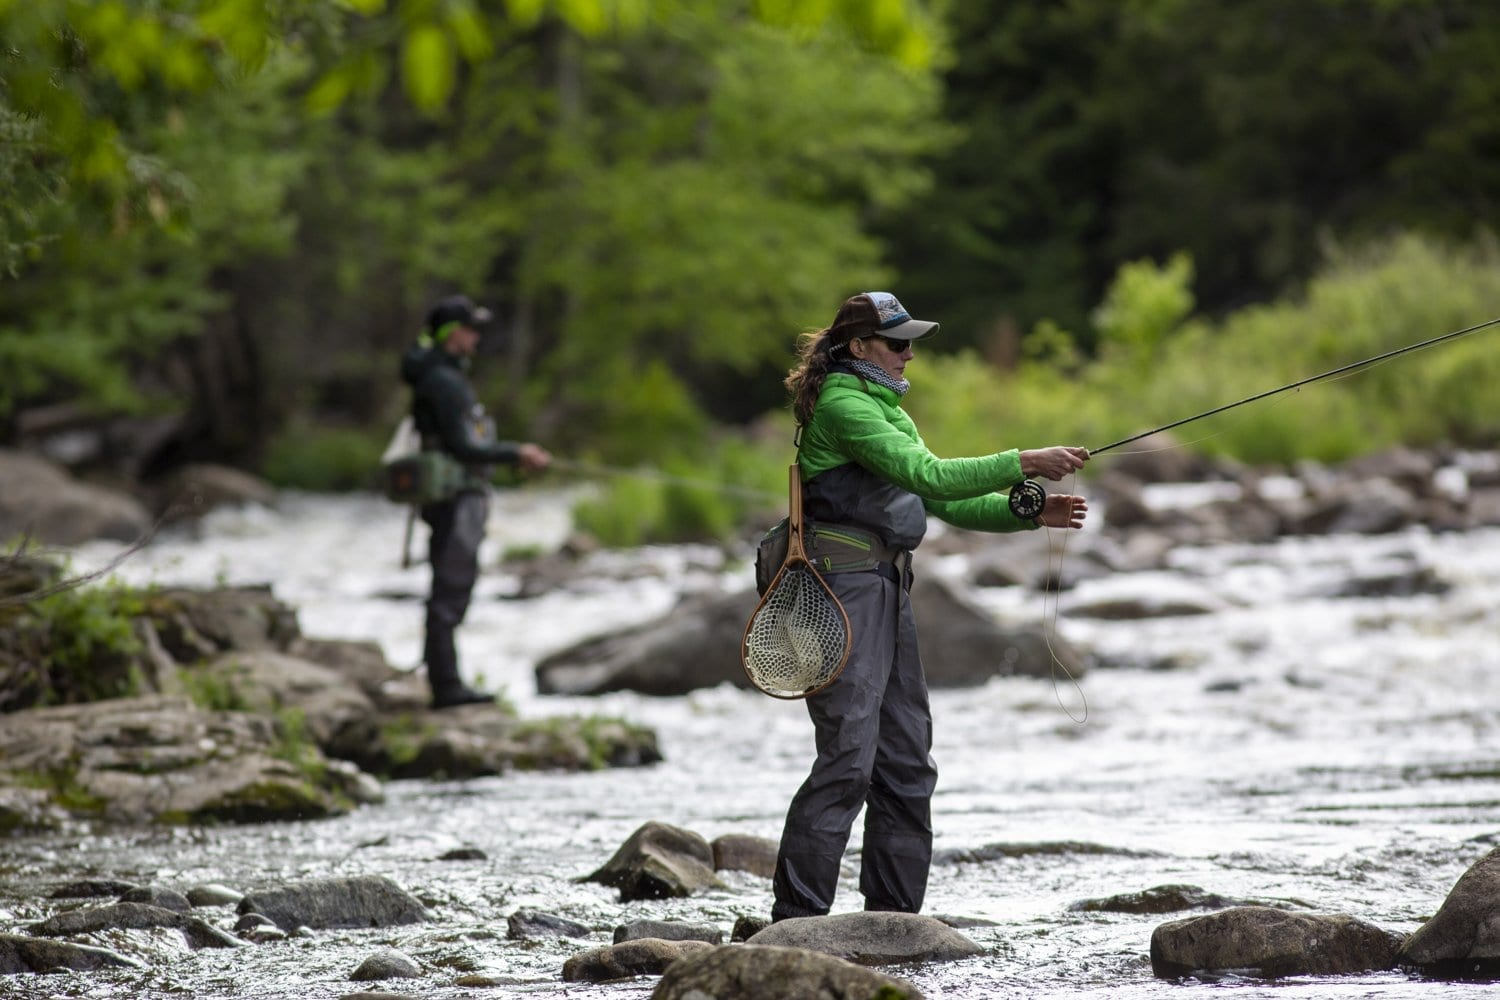 Anglers on the West Branch of the Ausable River. Photo by Mike Lynch